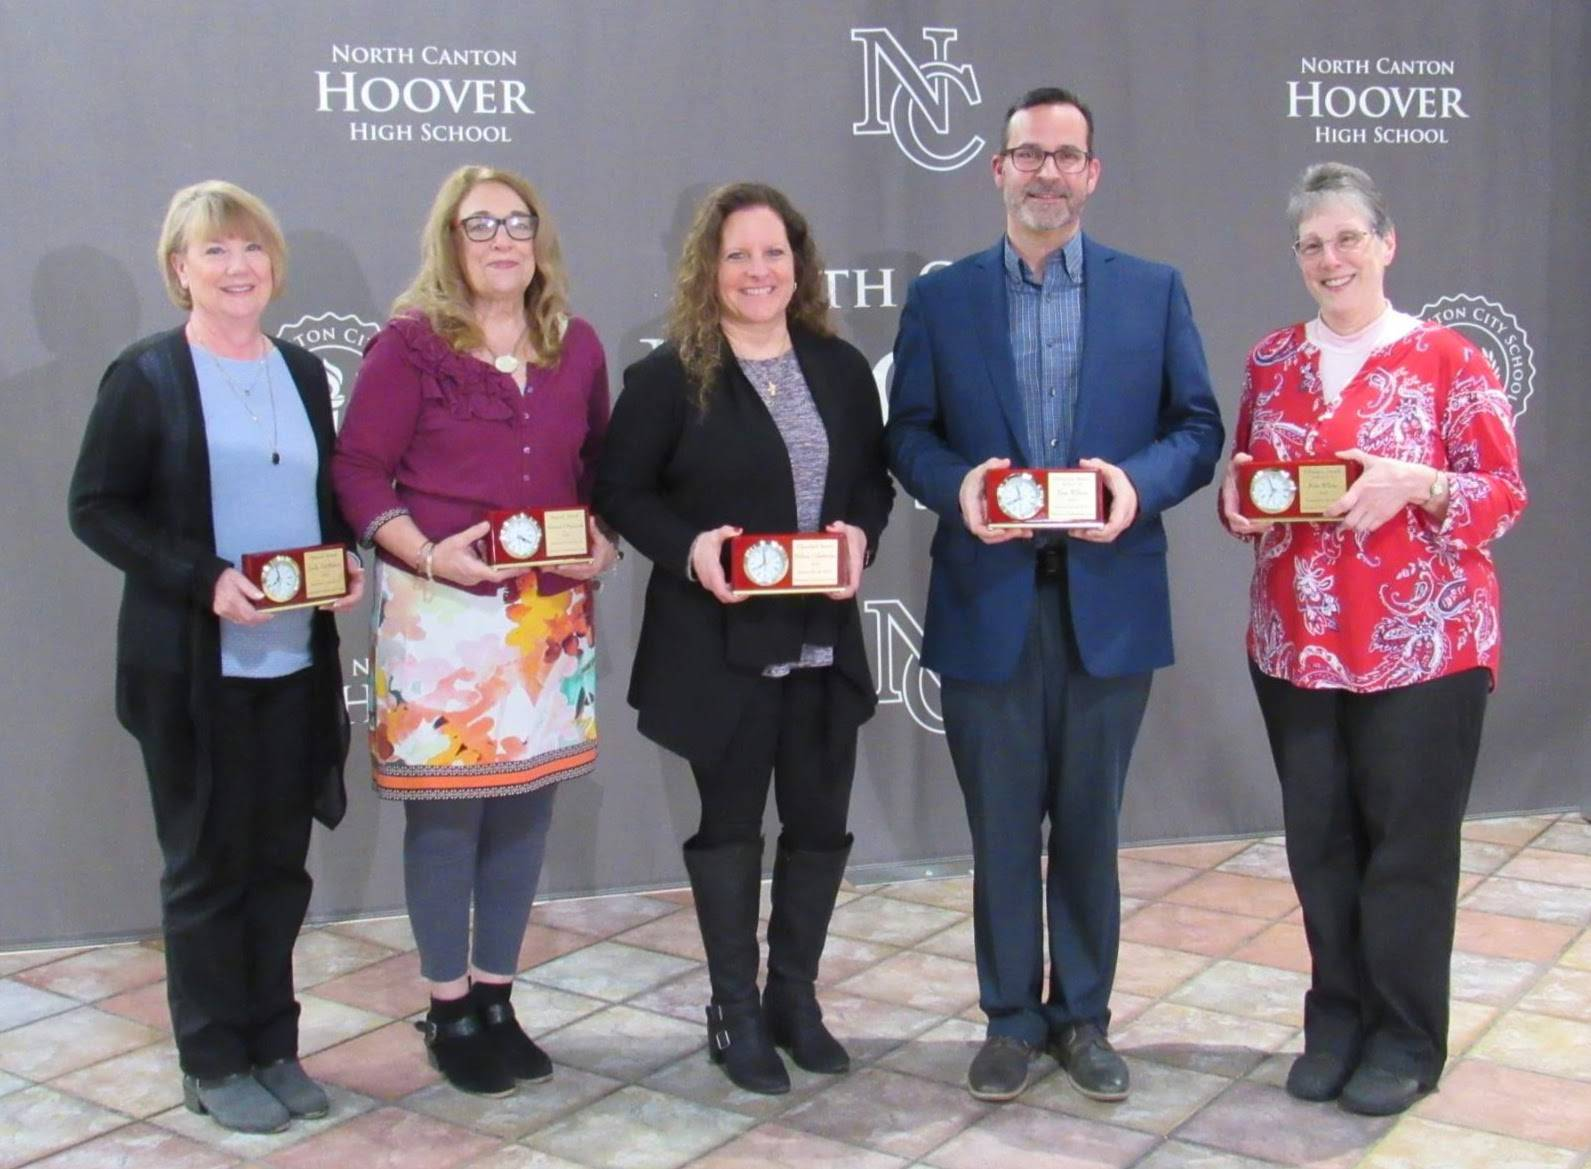 Four women and one man holding awards